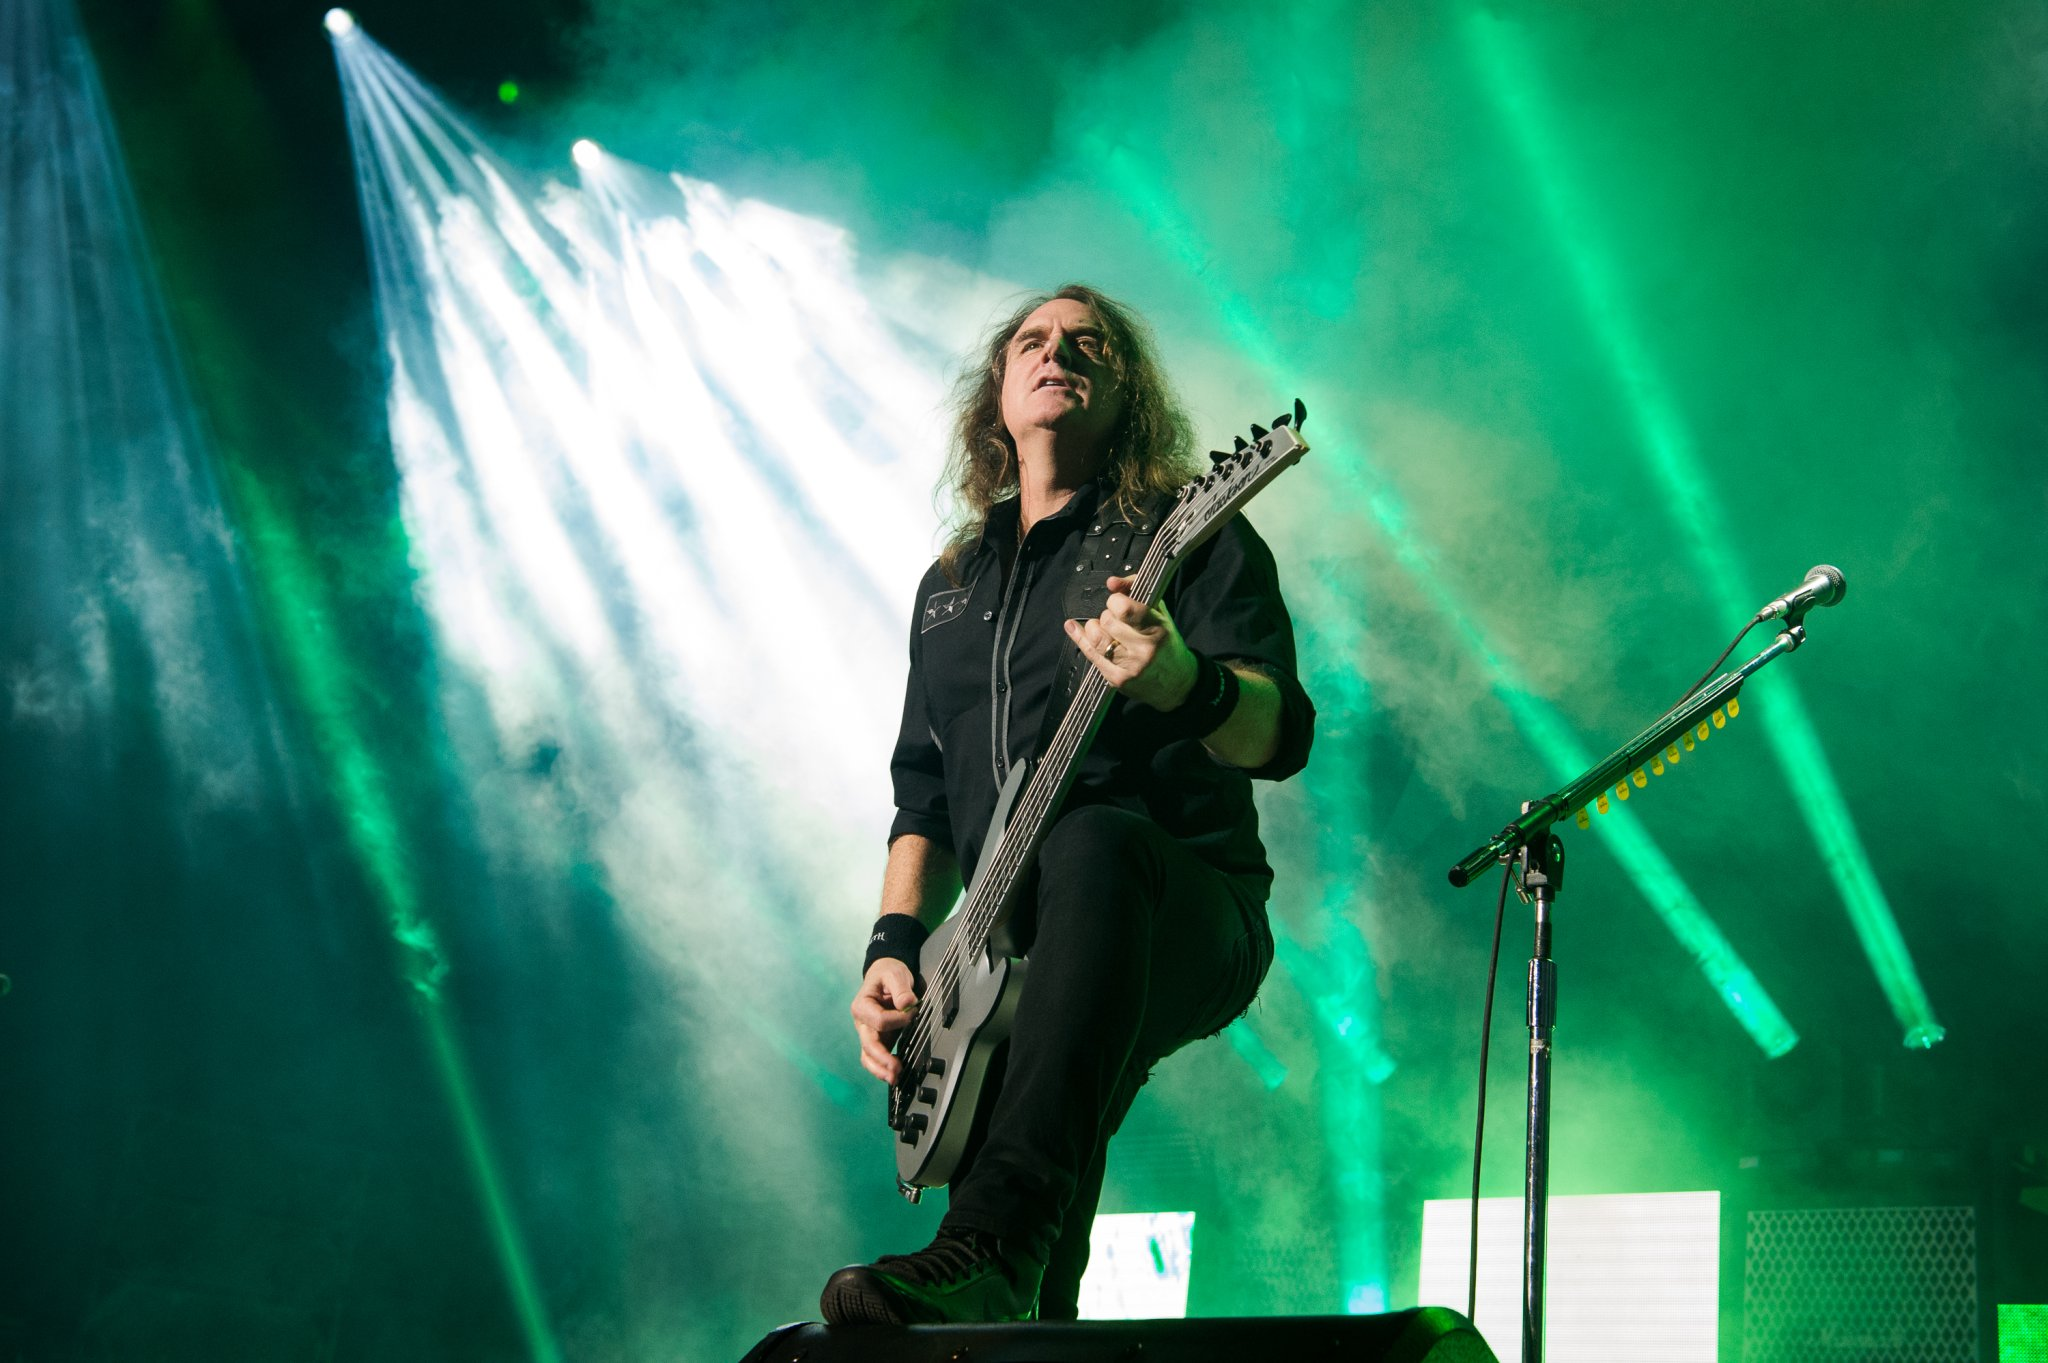 Sexual misconduct accusations just ended Megadeth as we know it